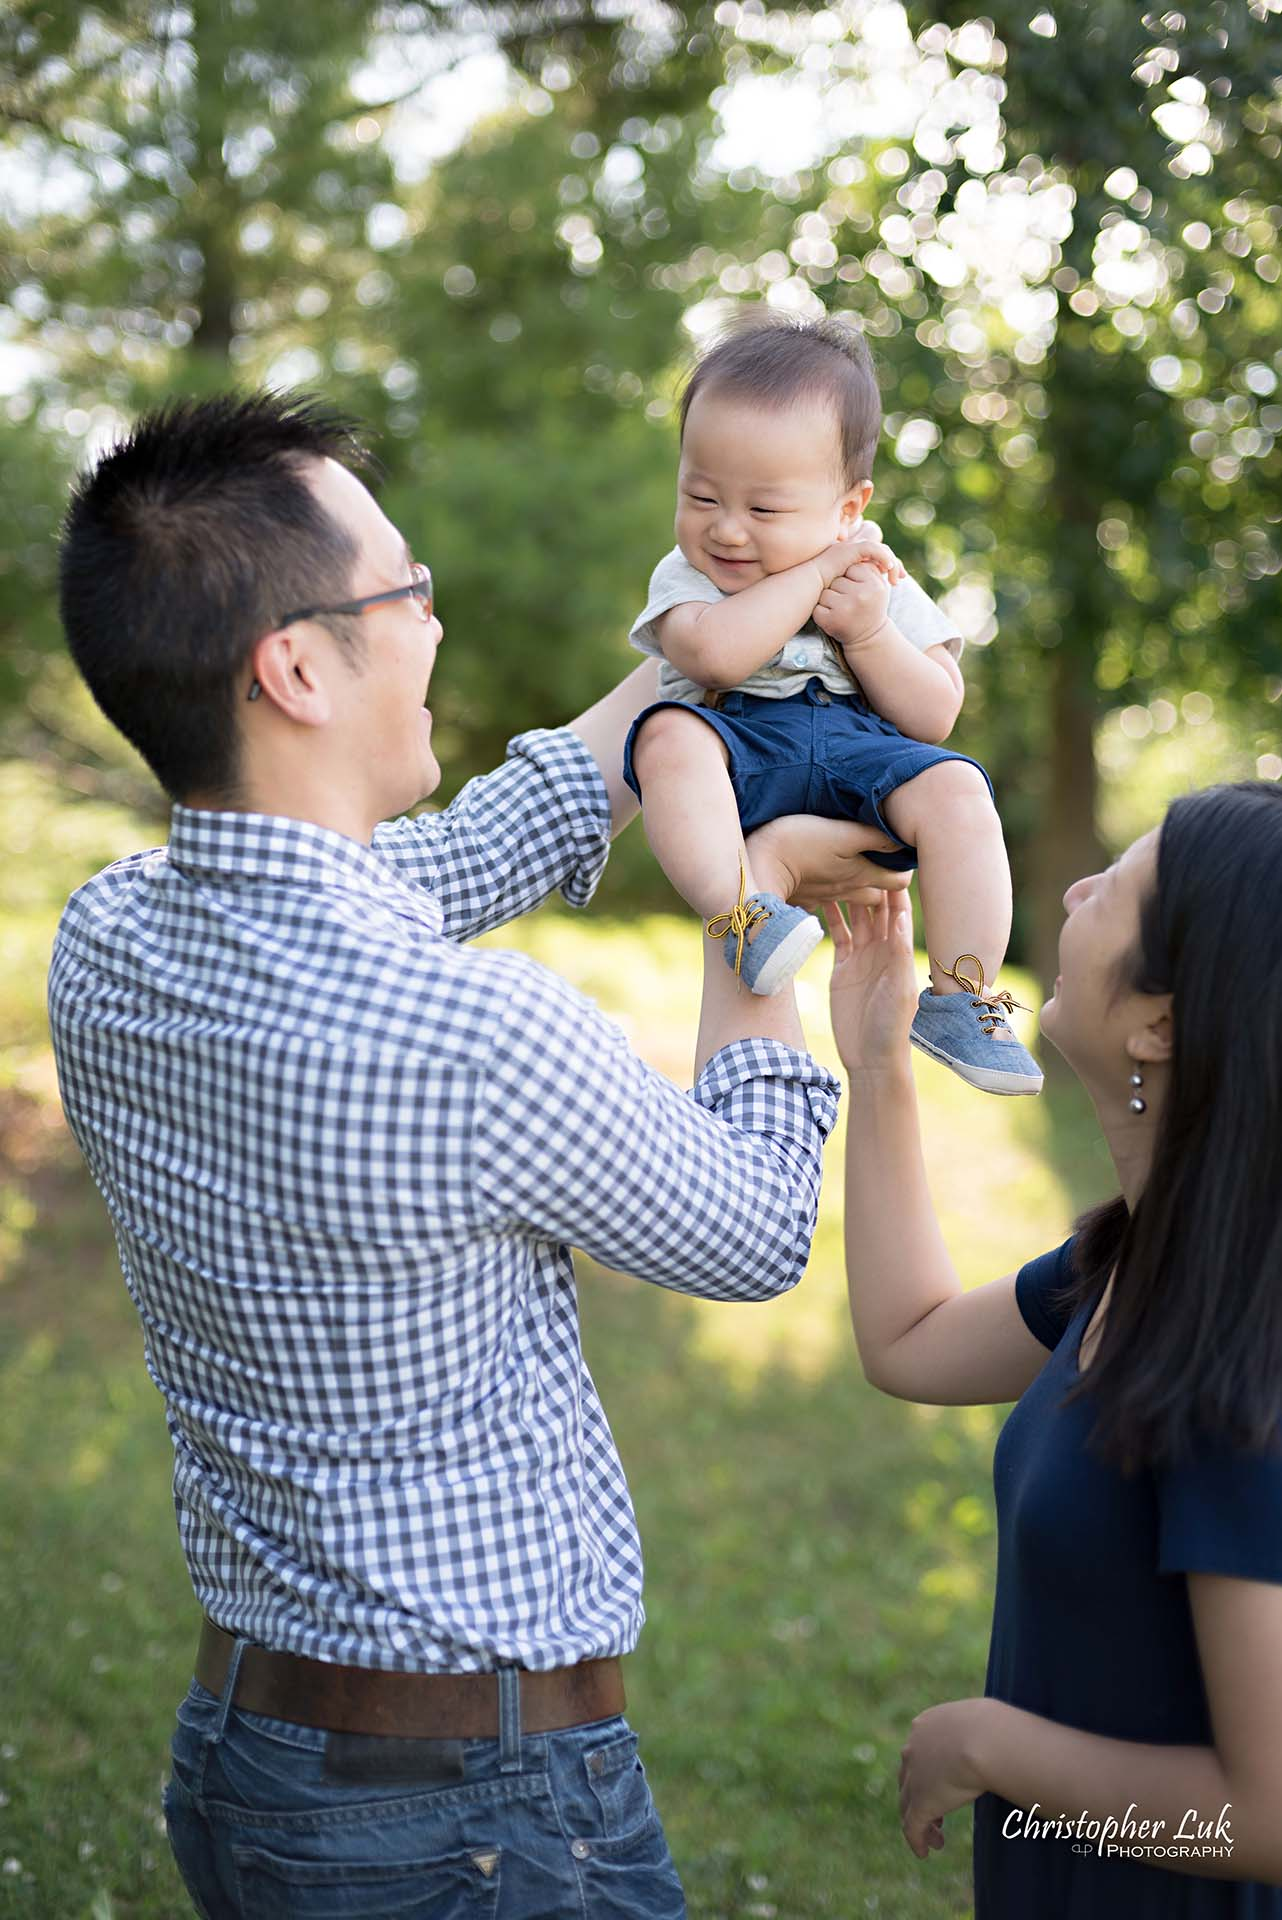 Christopher Luk Family Baby Wedding Photographer Richmond Hill Markham Toronto - Candid Natural Photojournalistic Father Mother Dad Mom Motherhood Fatherhood Baby Smile Cute Adorable Lifted Up Simba Lion King Smile Laugh